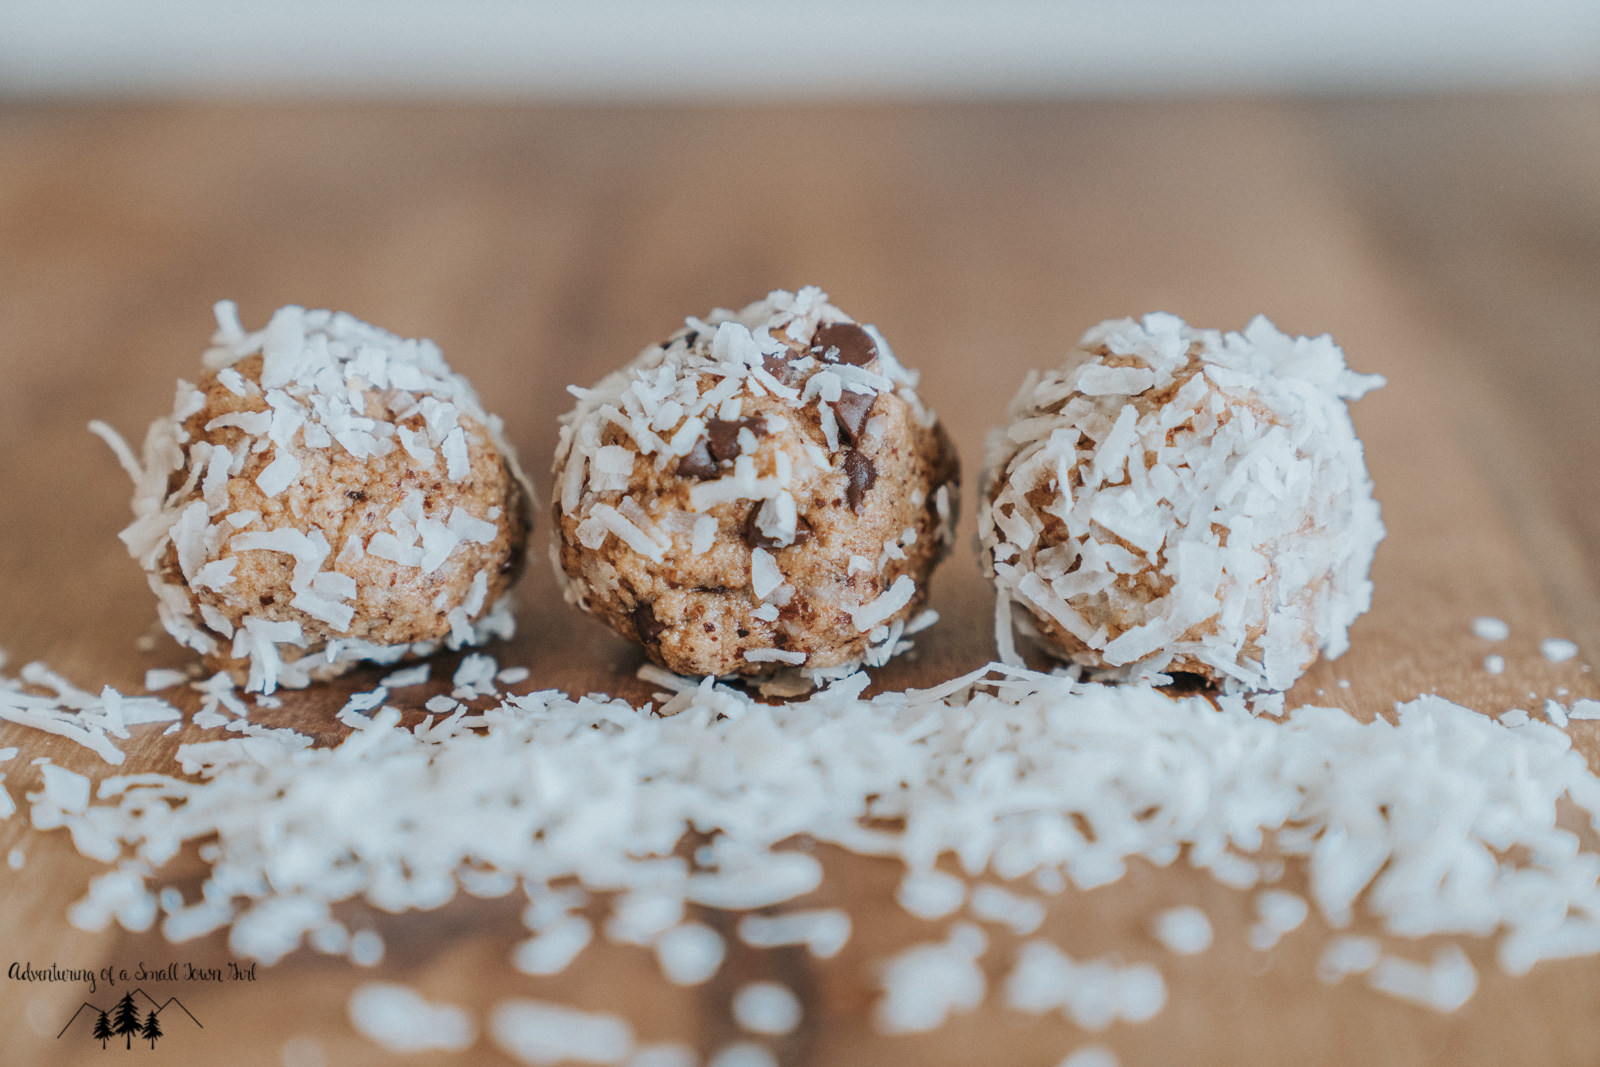 Protein Ball Recipe - Adventuring of a Small Town Girl-9.jpg